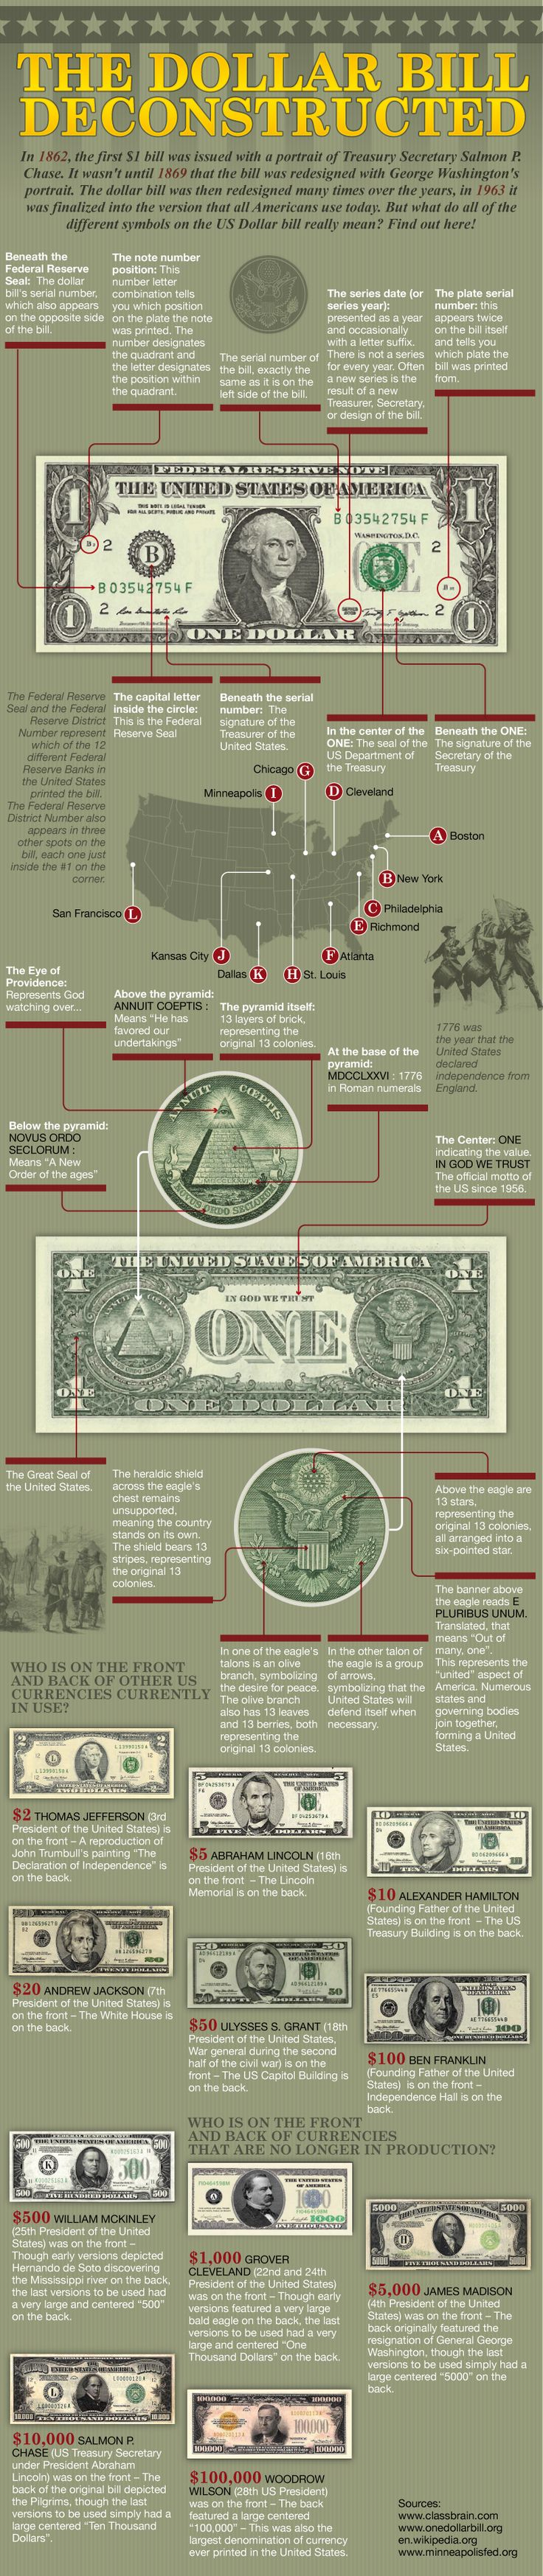 CURIOUS ¥ The US dollar bill has been redesigned many times over the years, in 1963 it was finalized into the version that all Americans use today. But what do